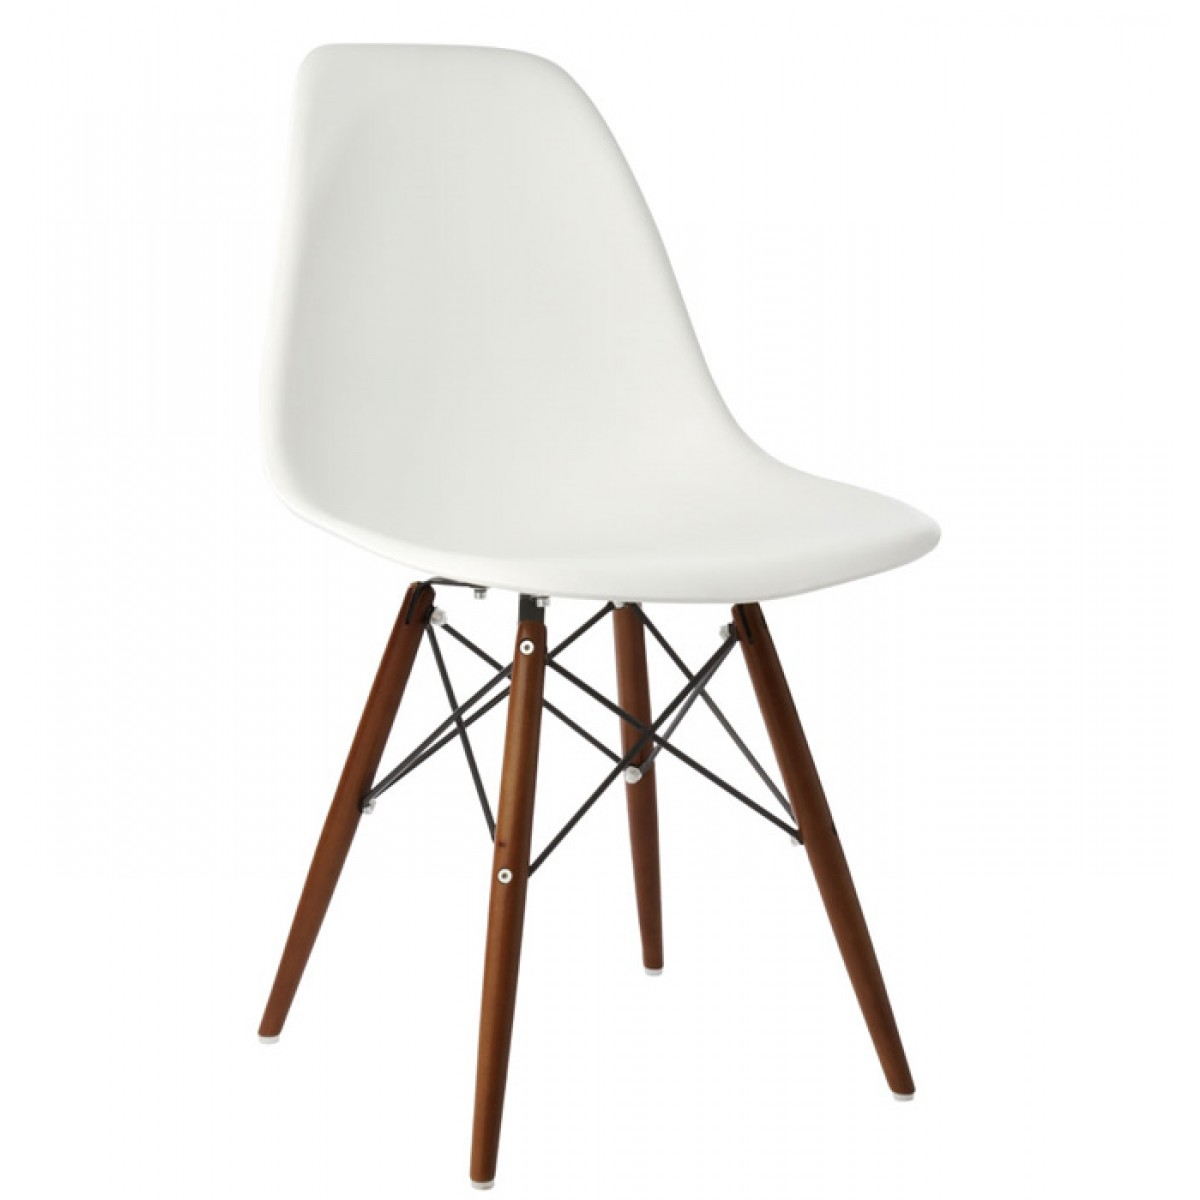 Eames Chair Beige Set Of 2 Dsw Molded White Plastic Dining Shell Chair With Dark Walnut Wood Eiffel Legs